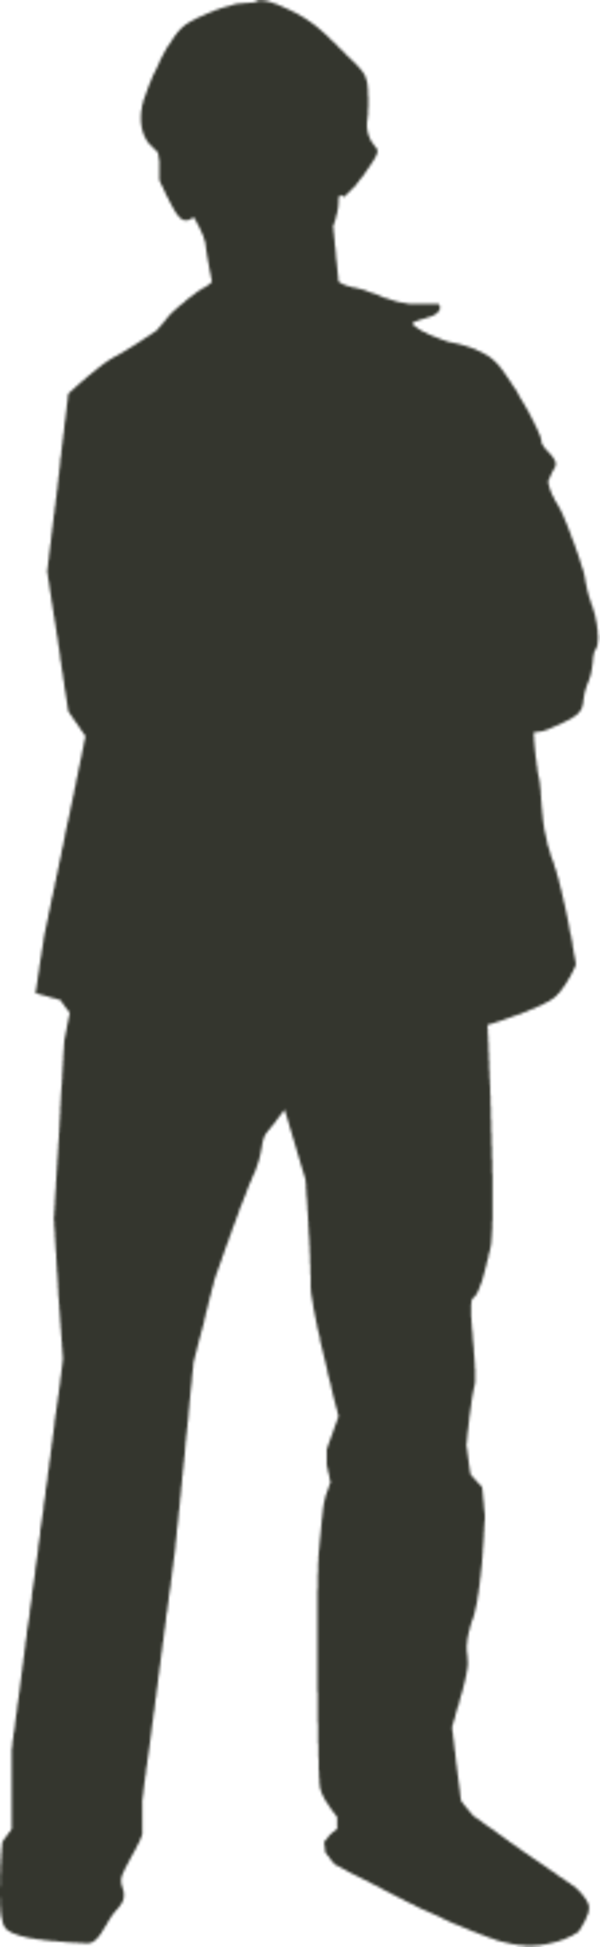 Large Person Outline 3 33 3 12632 Png